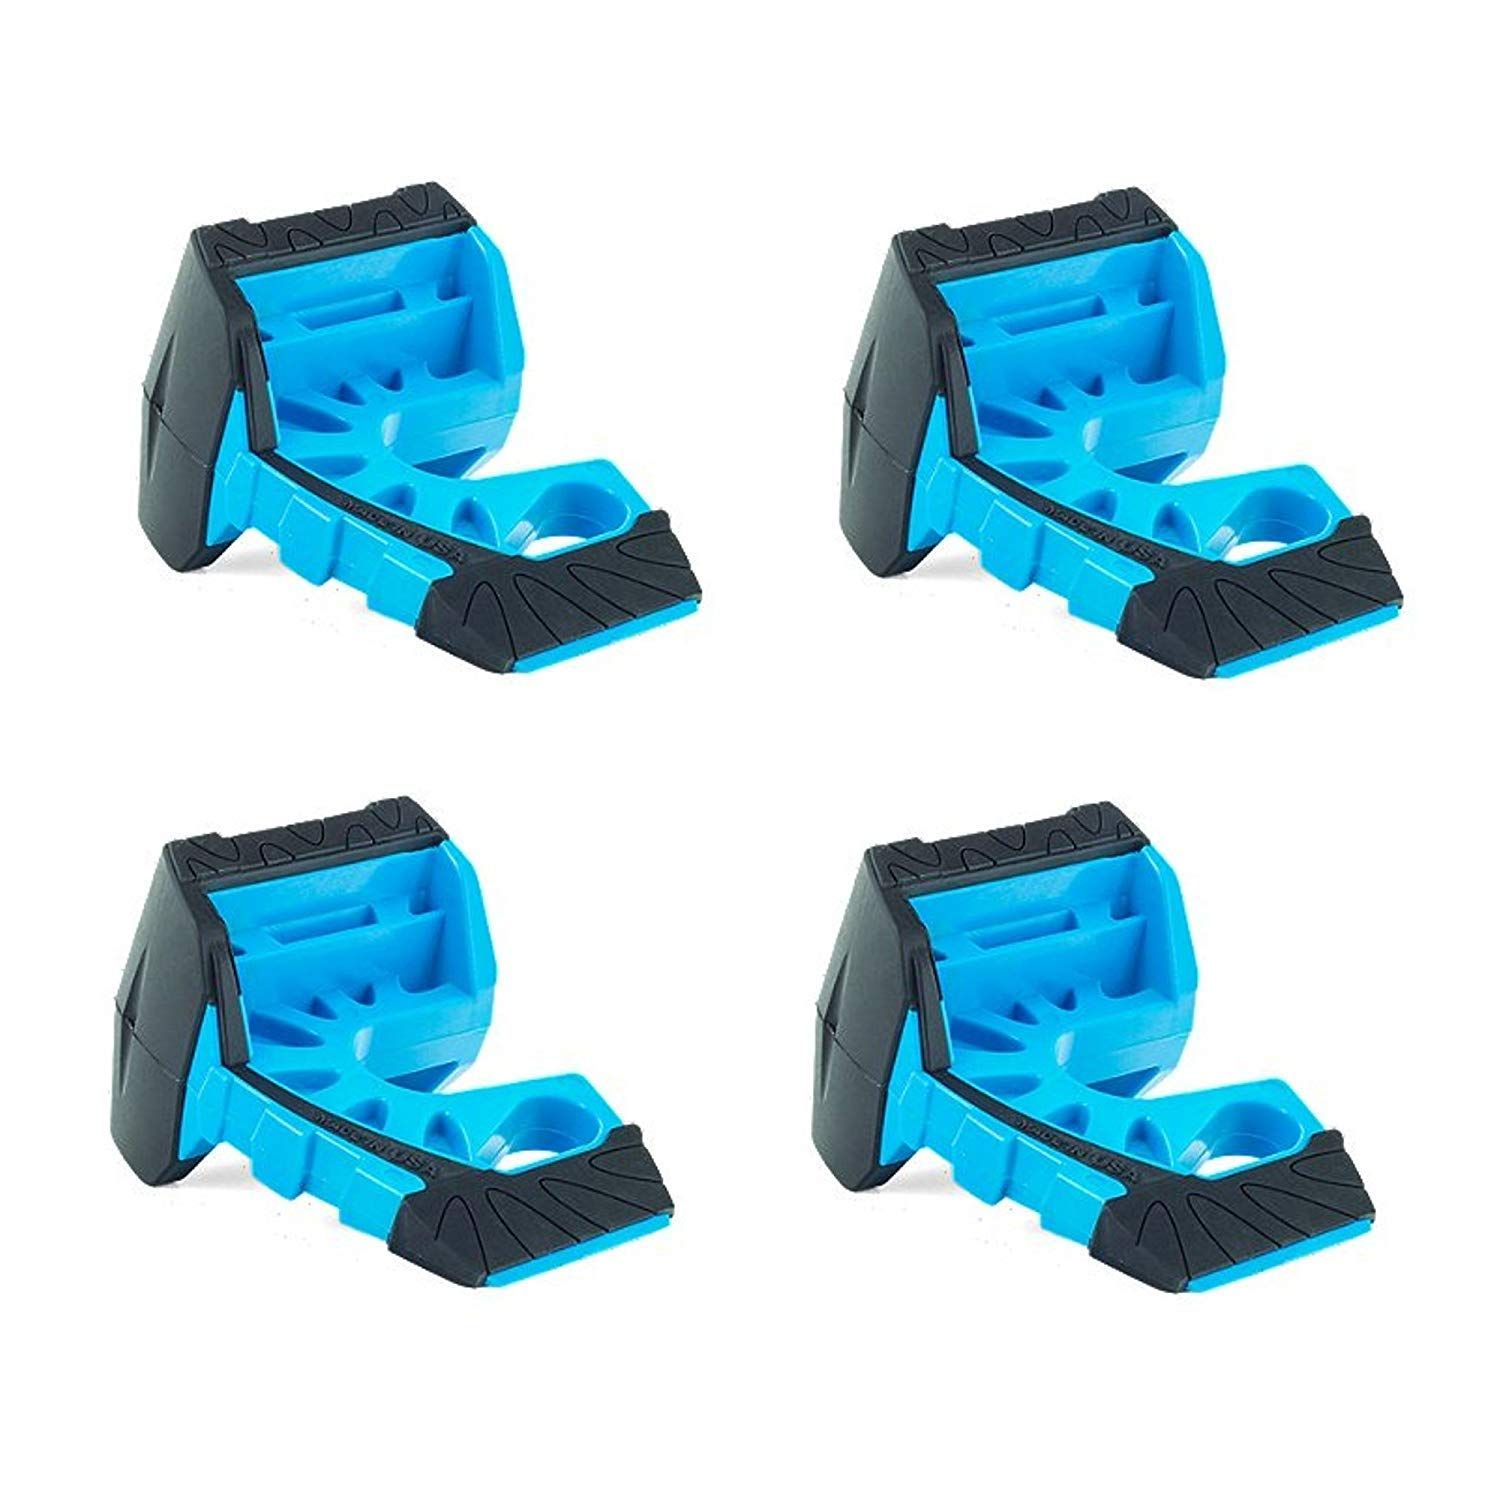 Wedge-It - The Ultimate Door Stop - Blue (4 in quantity) by Wedge-It